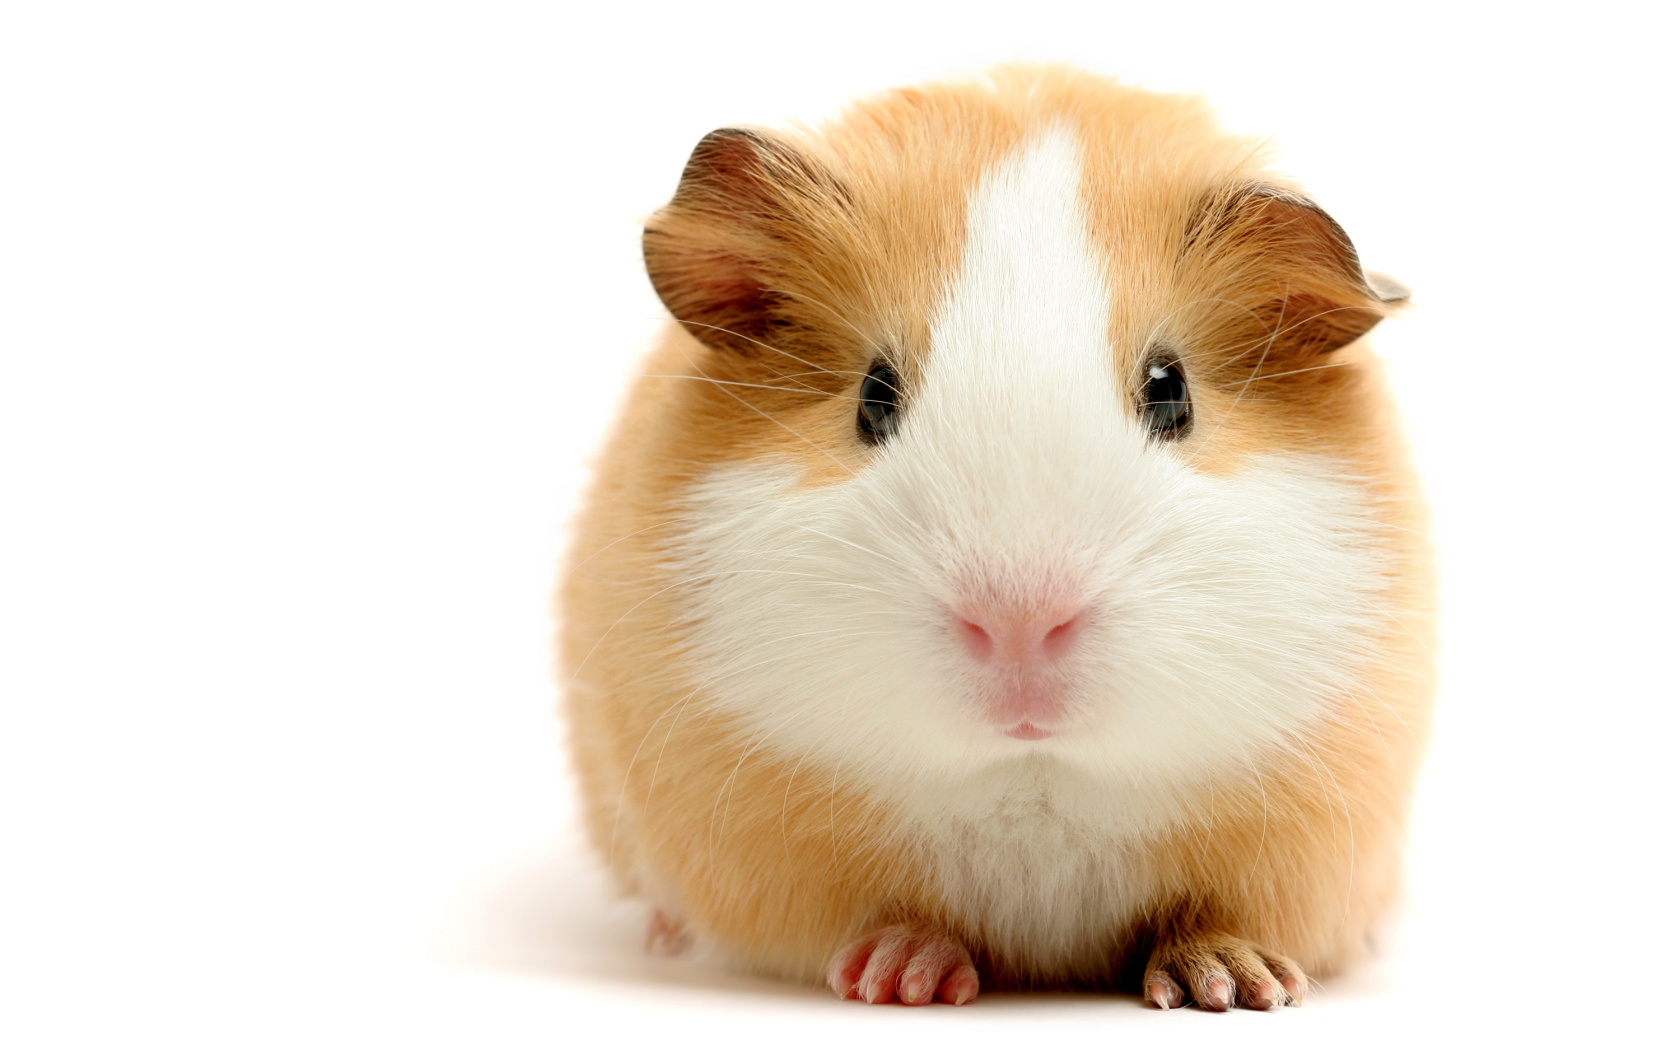 15951 download wallpaper Animals, Hamsters, Rodents screensavers and pictures for free